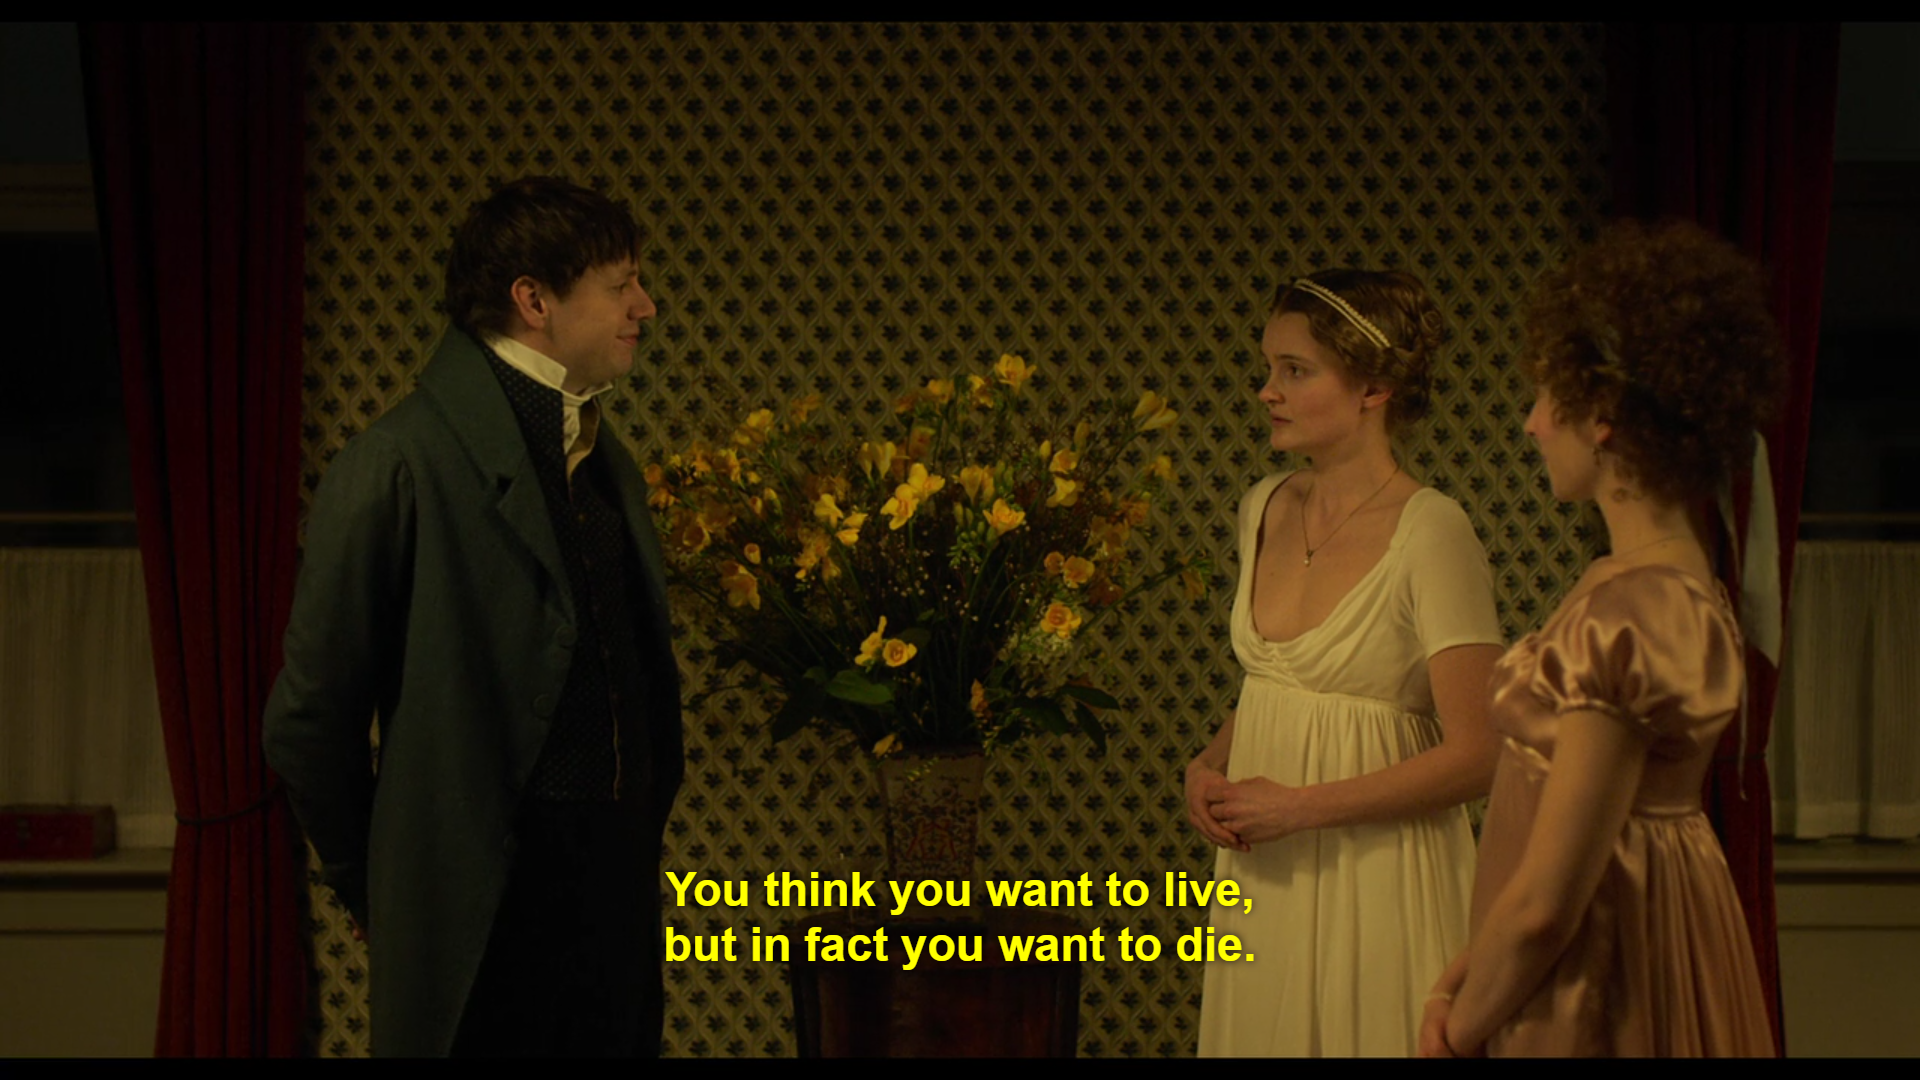 """a man faces two women in period costume and speaks the words """"You think you want to live, but in fact you want to die"""""""